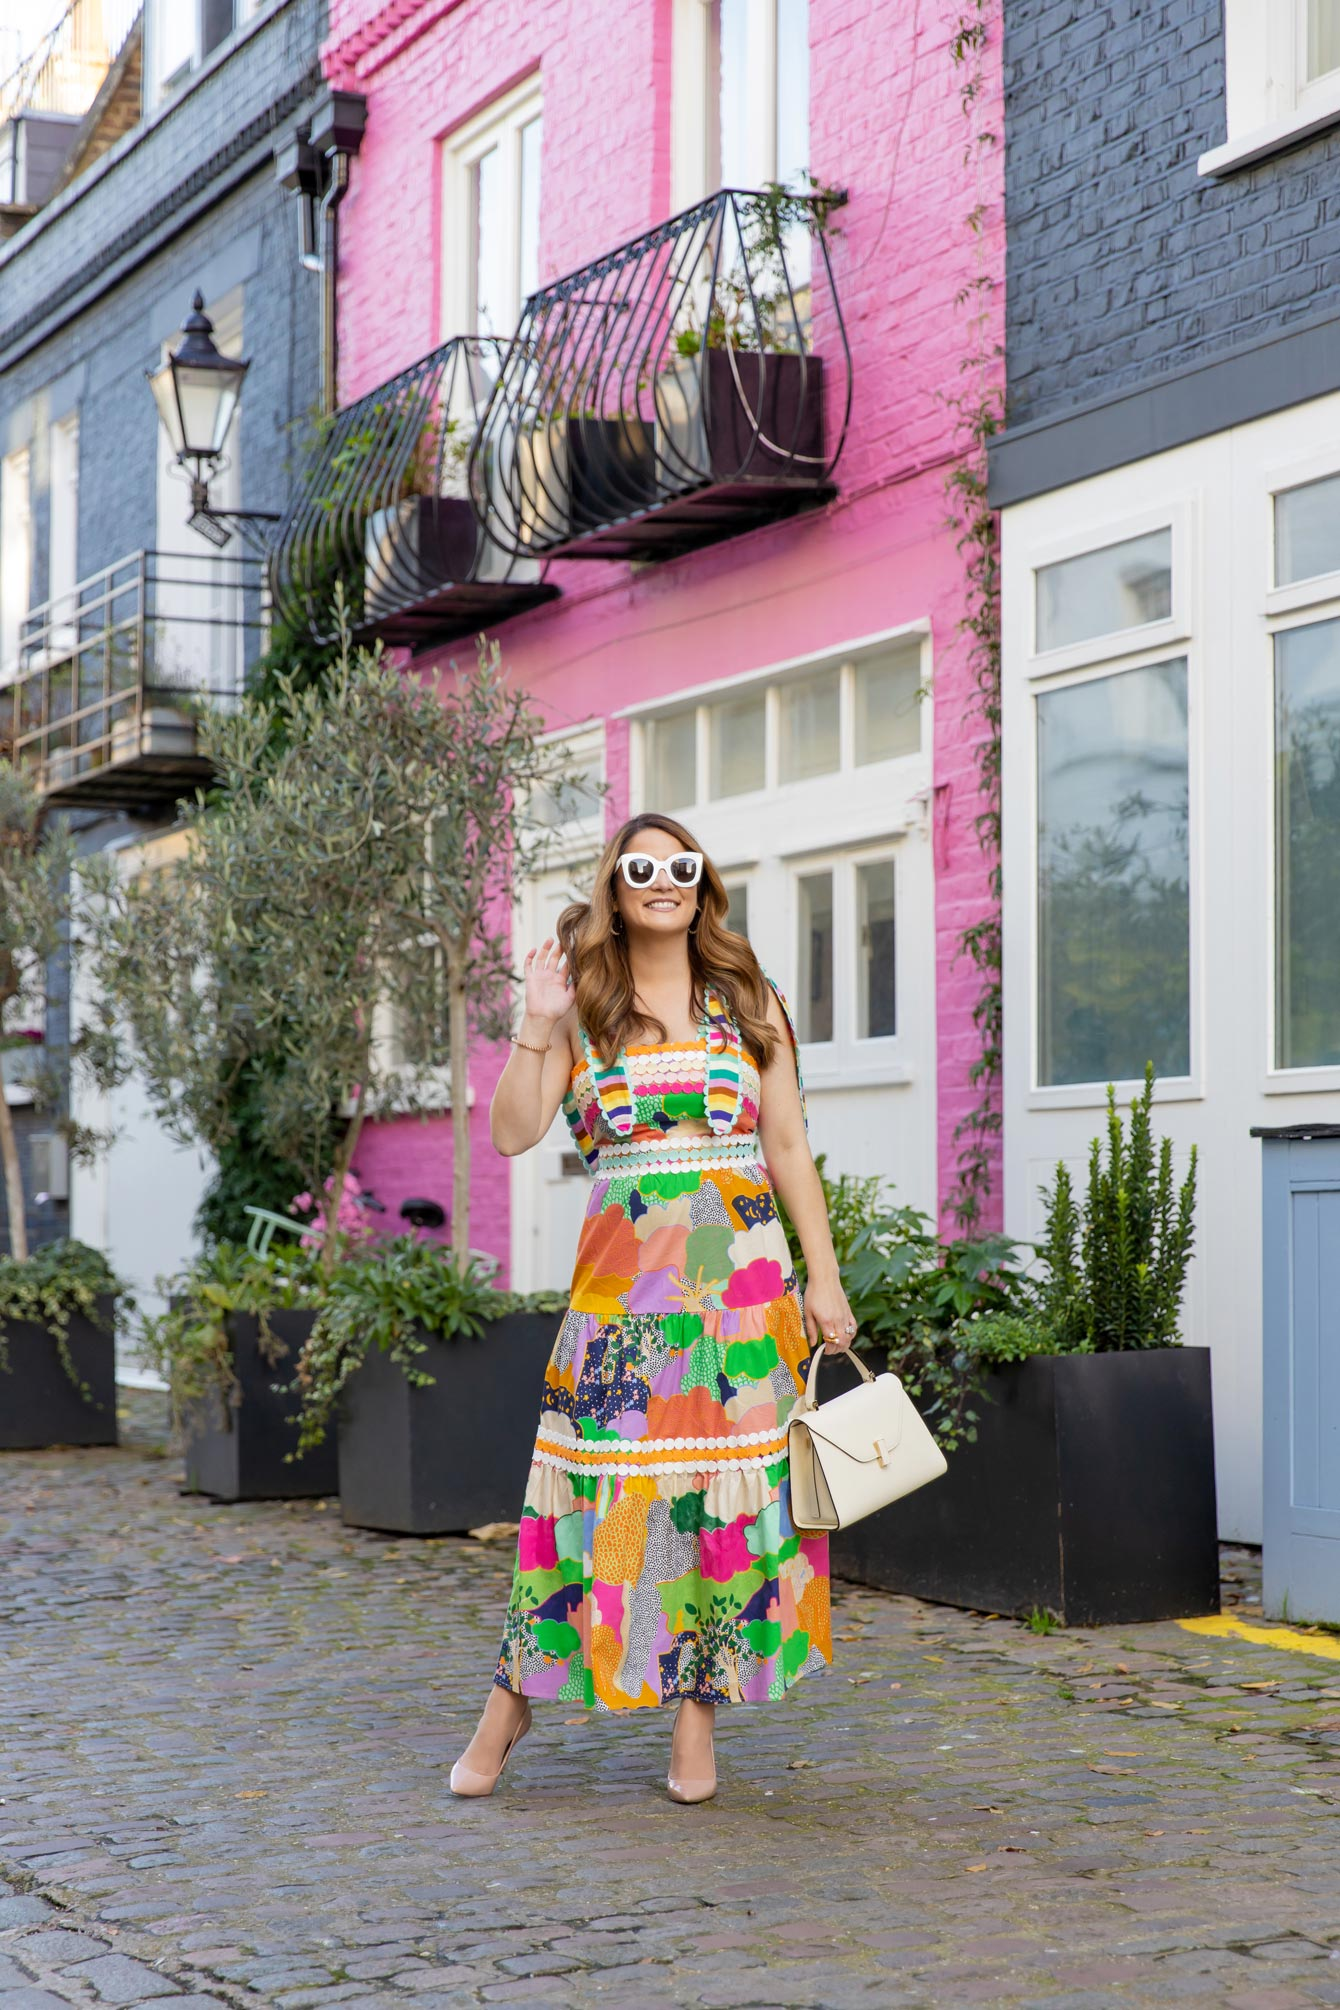 London Colorful Homes